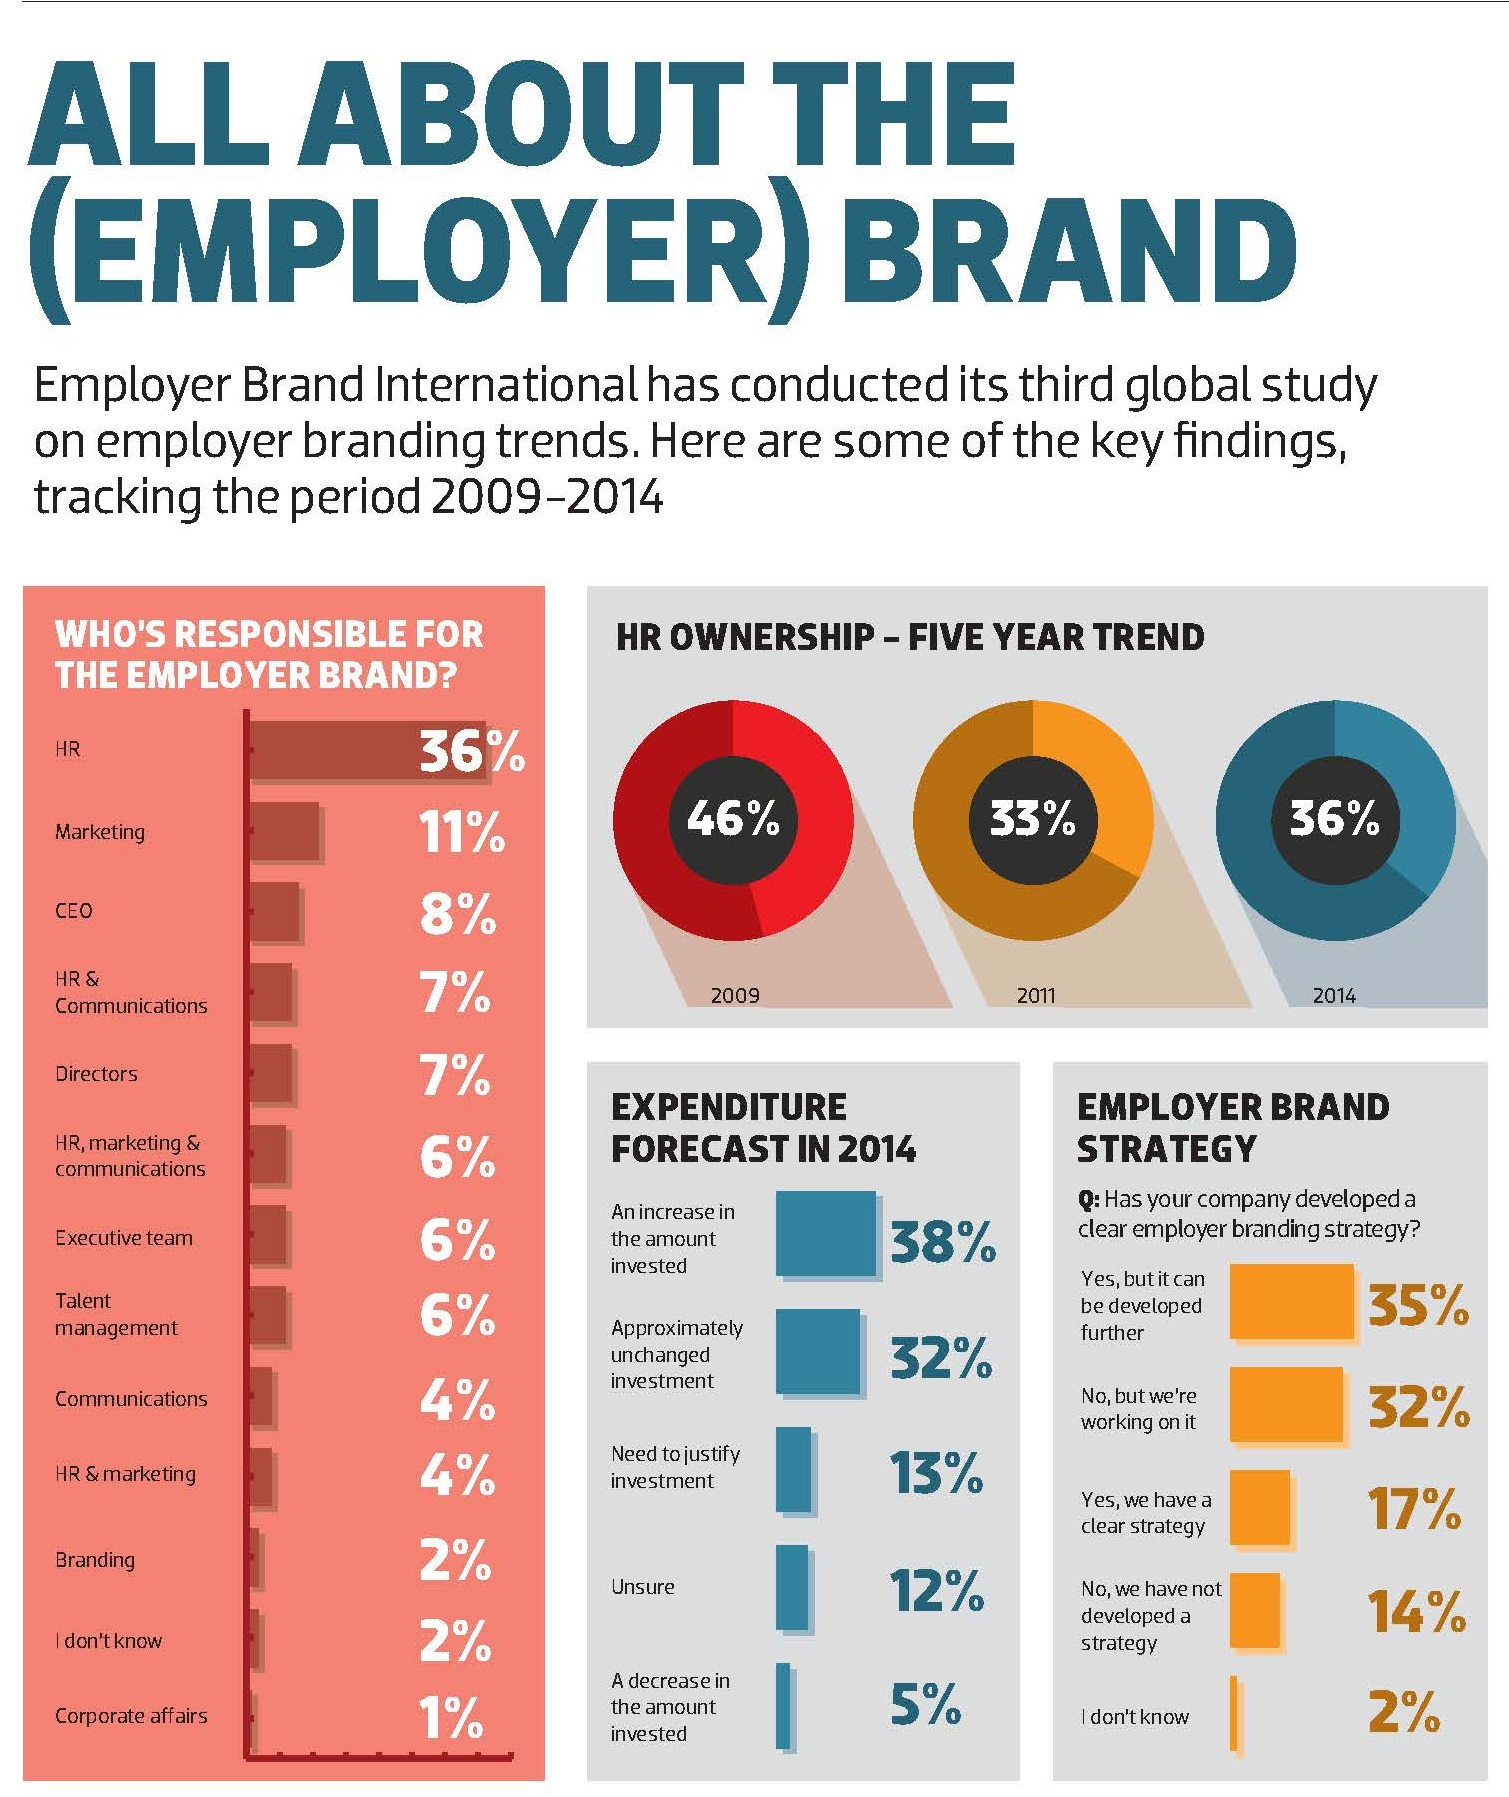 Employer branding on ability to attract talent